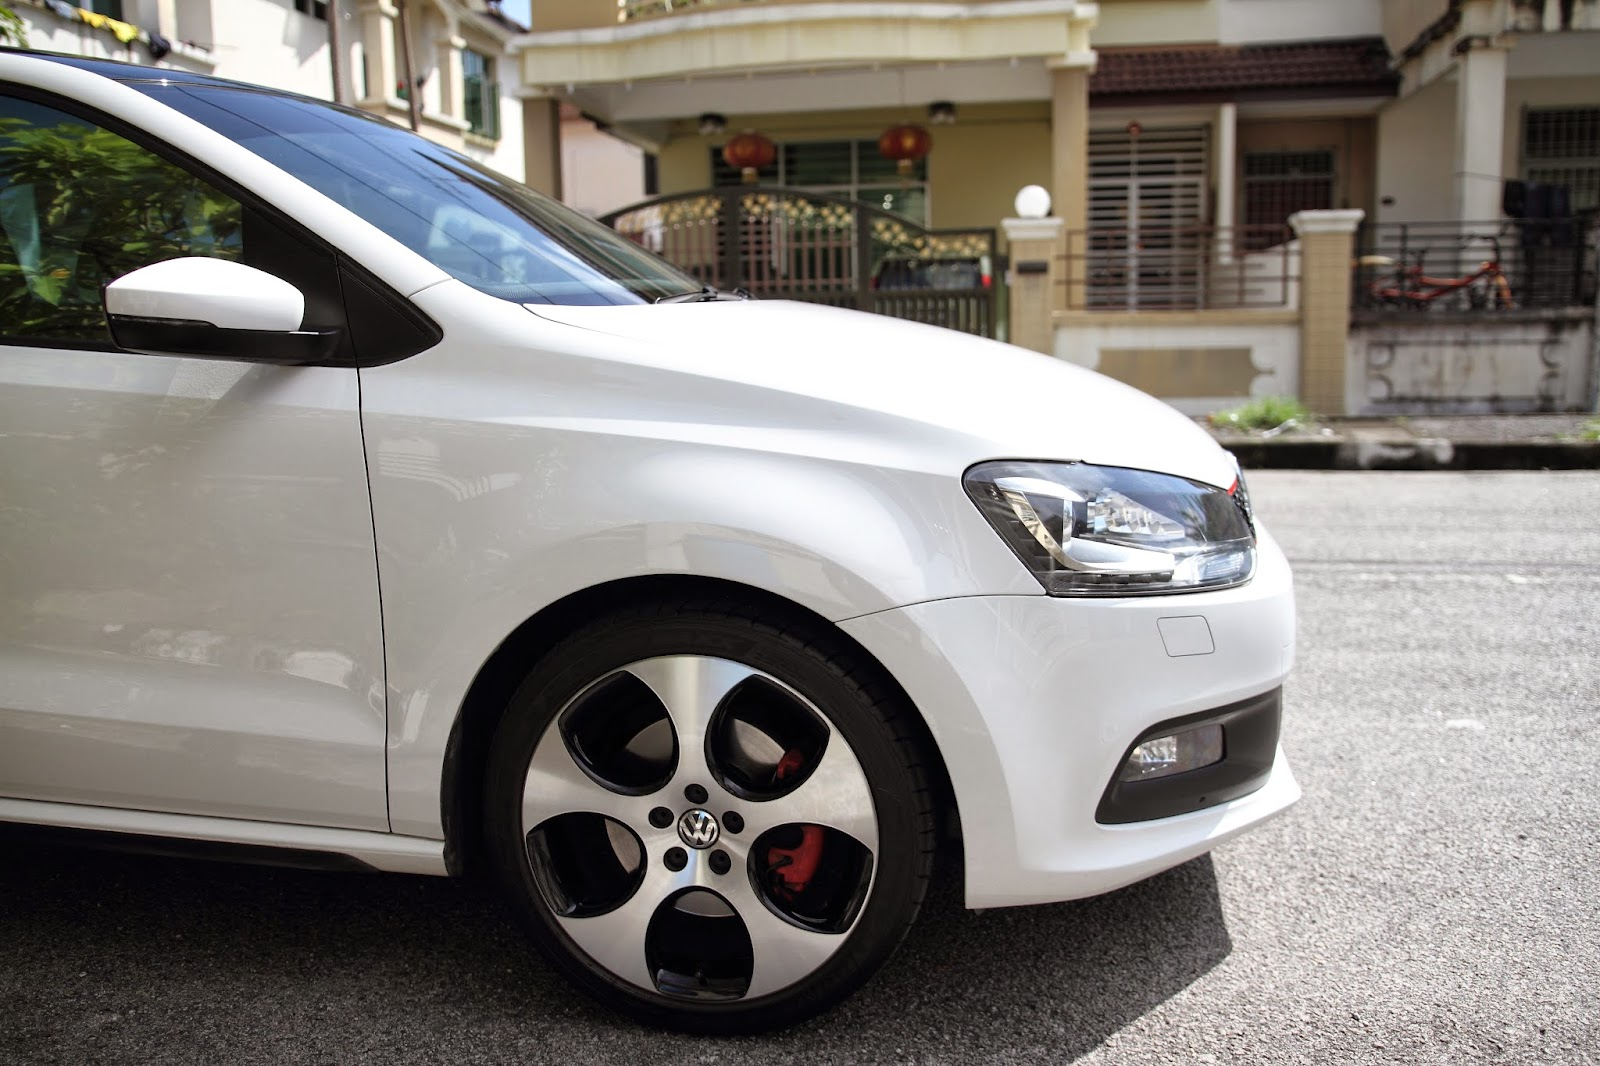 Polo Gti (6R) - 3 years ownership | Verm\'s Planet